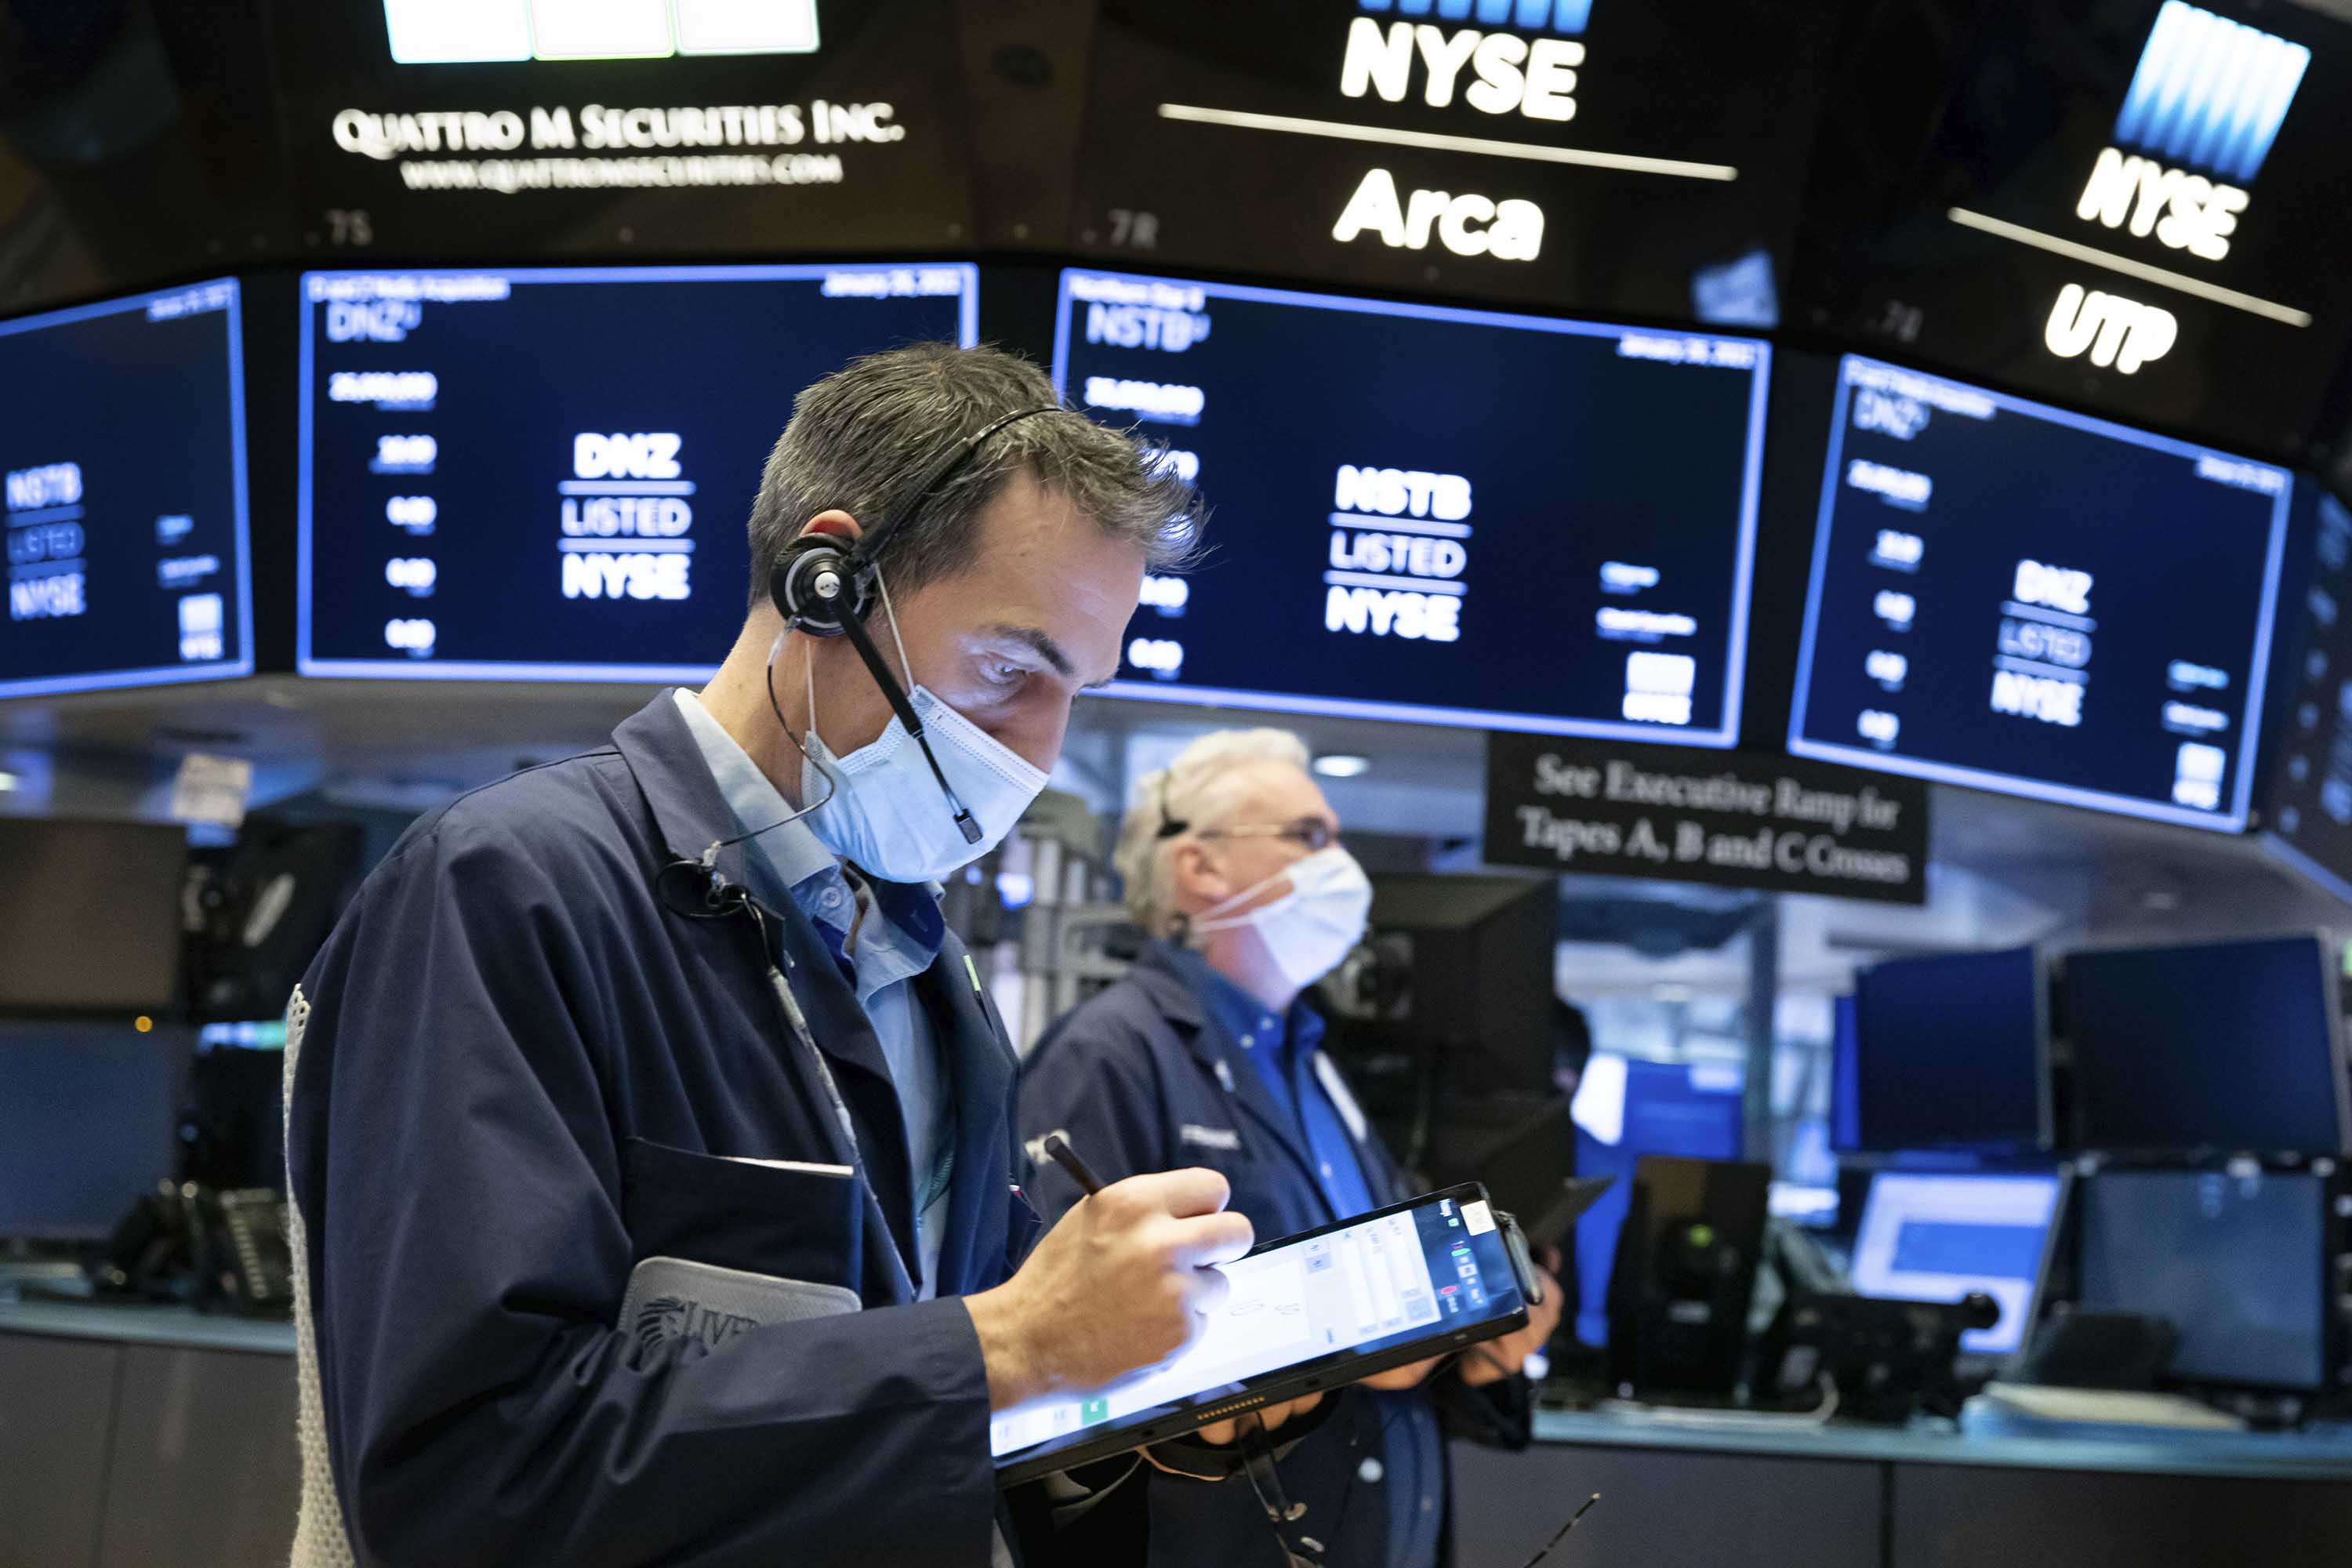 Traders work on the floor of the New York Stock Exchange on Tuesday, January 26.